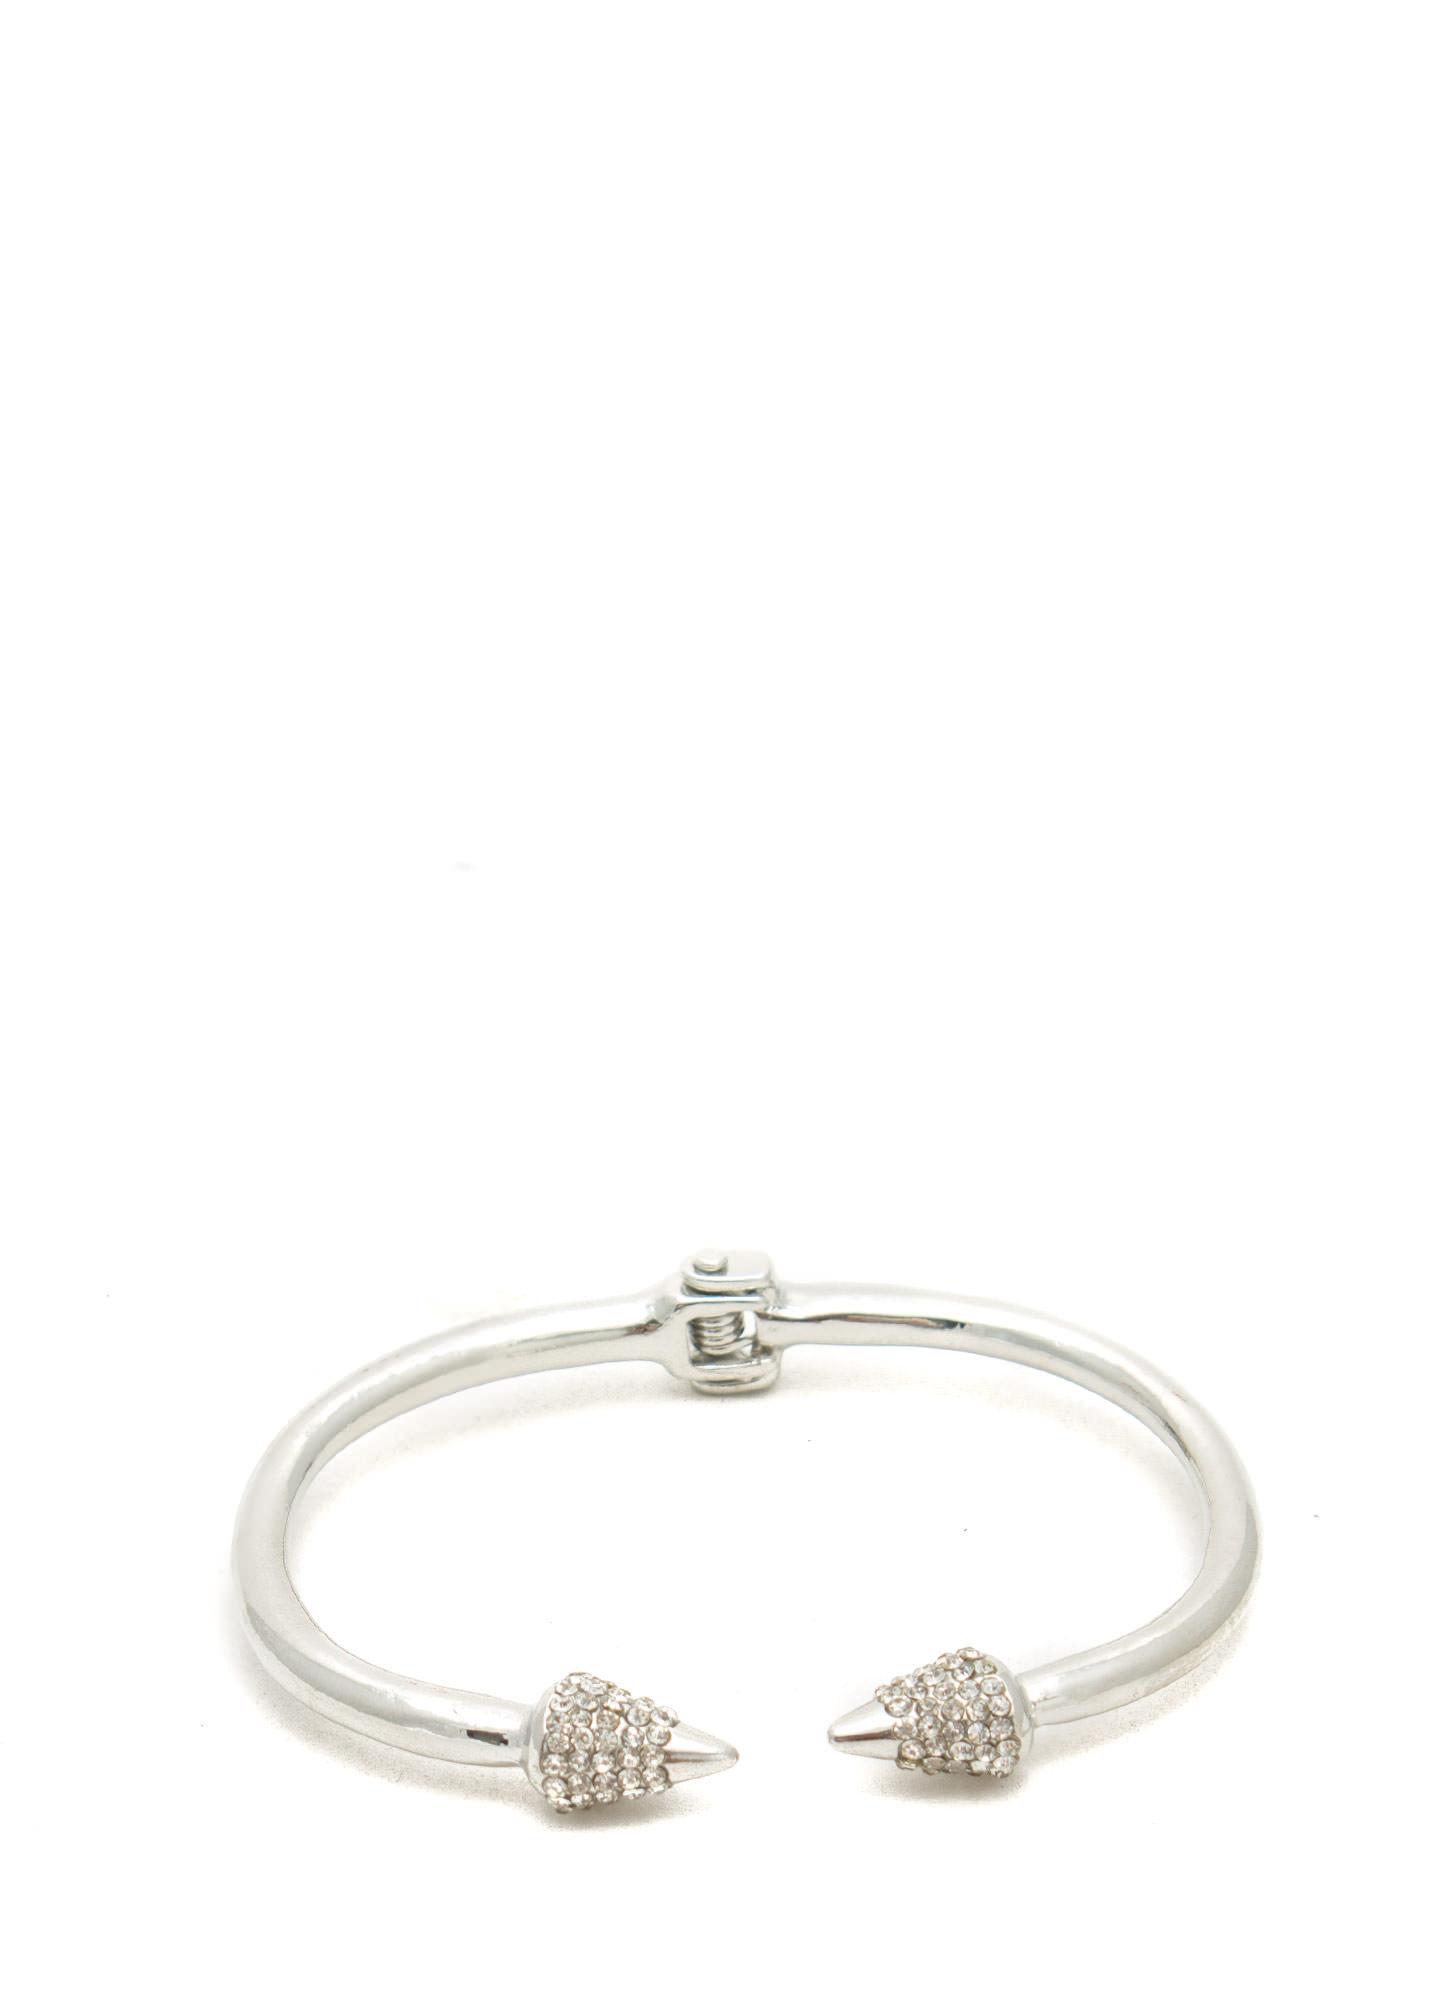 Spiked Bracelet Duo SILVER